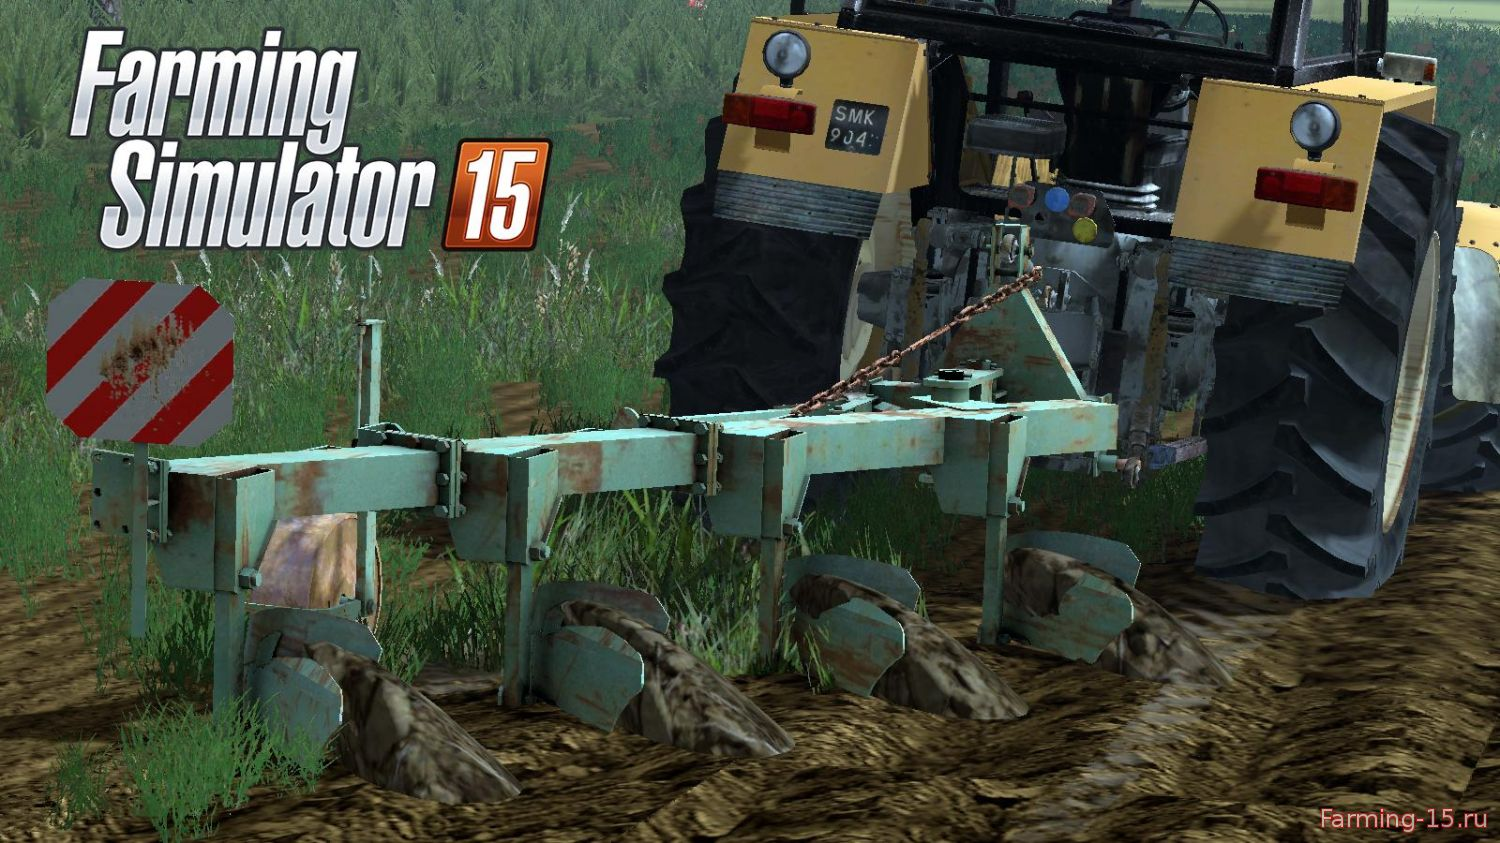 С/Х инвентарь для Мод плуг Агрозет 4 - Agrozet 4 v2 для Farming Simulator 2015